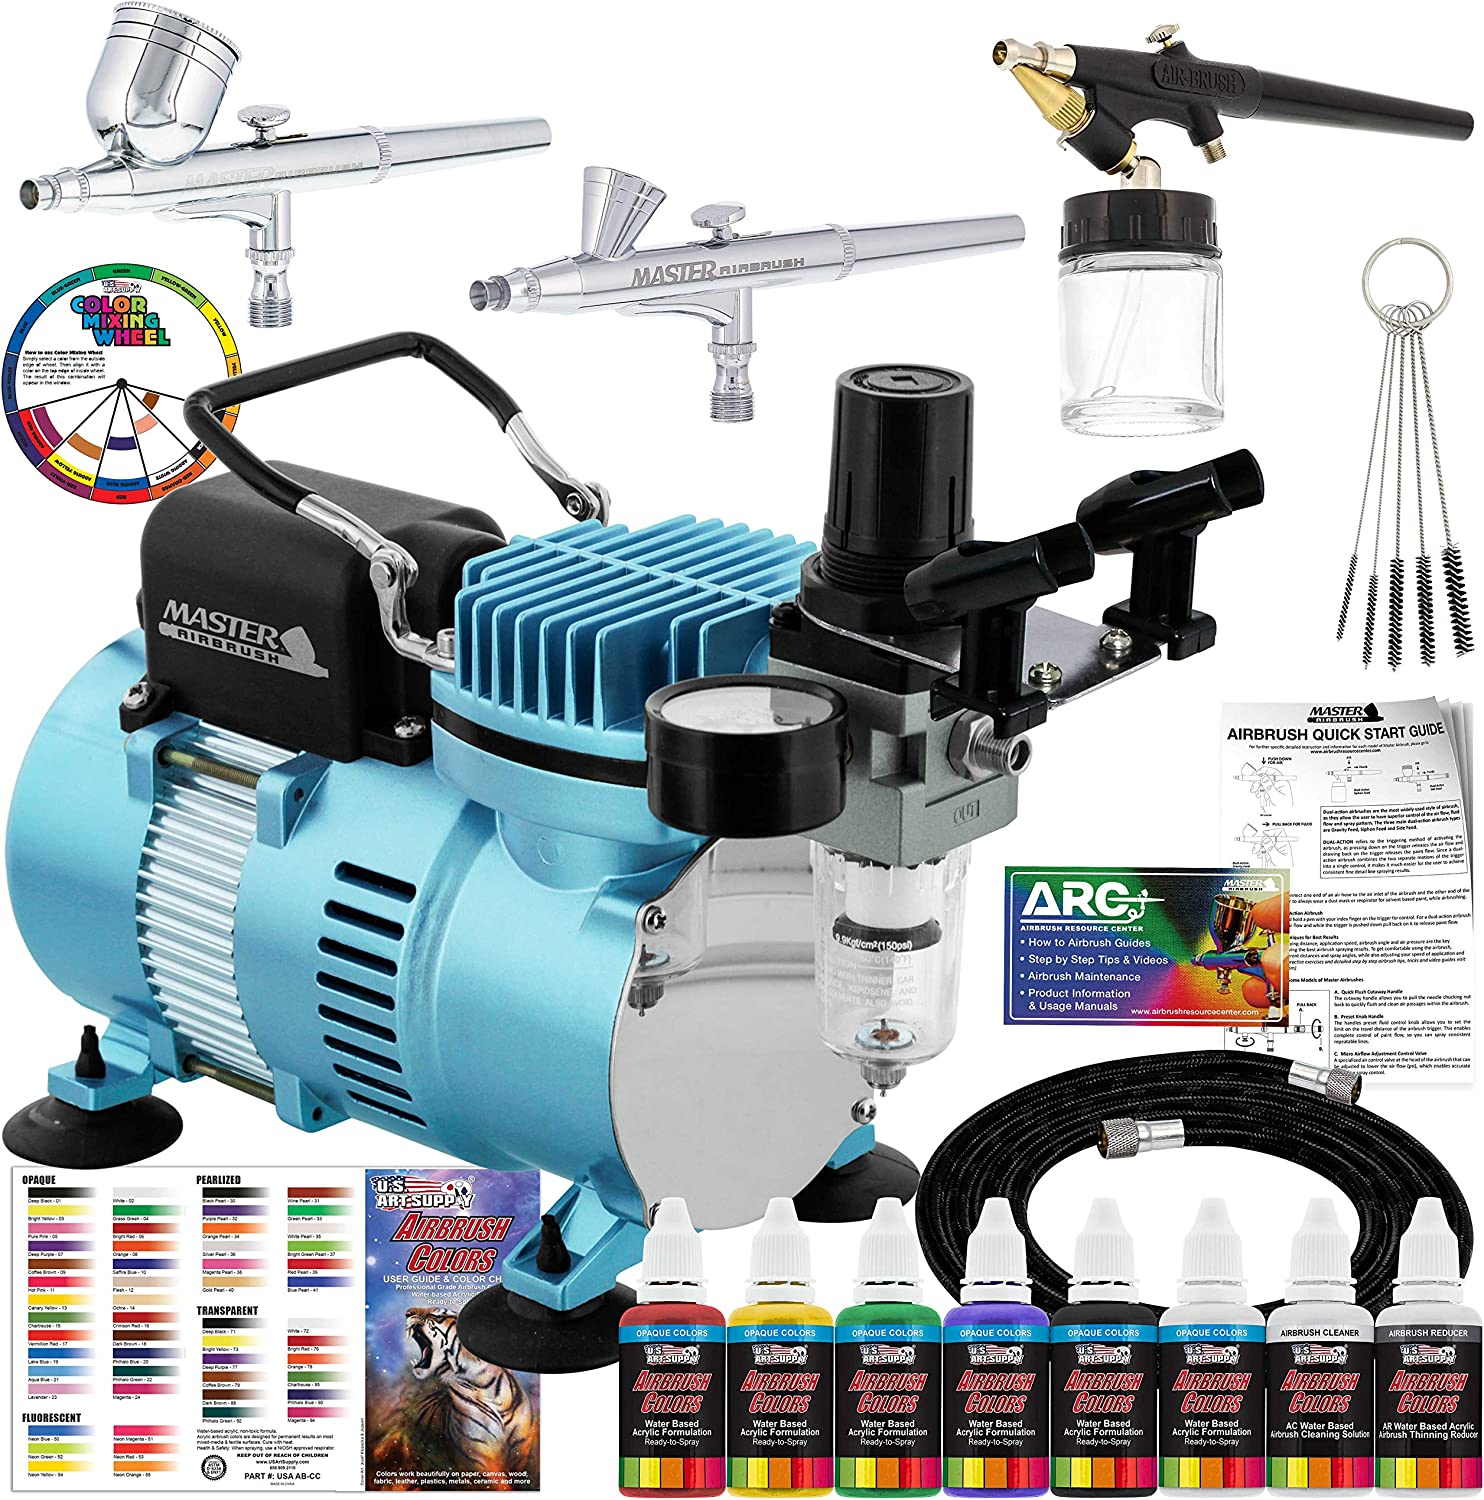 Check out 9 Top Rated Airbrush Kits On Amazon That Are Under $100 at https://diyprojects.com/airbrush-kit-amazon/